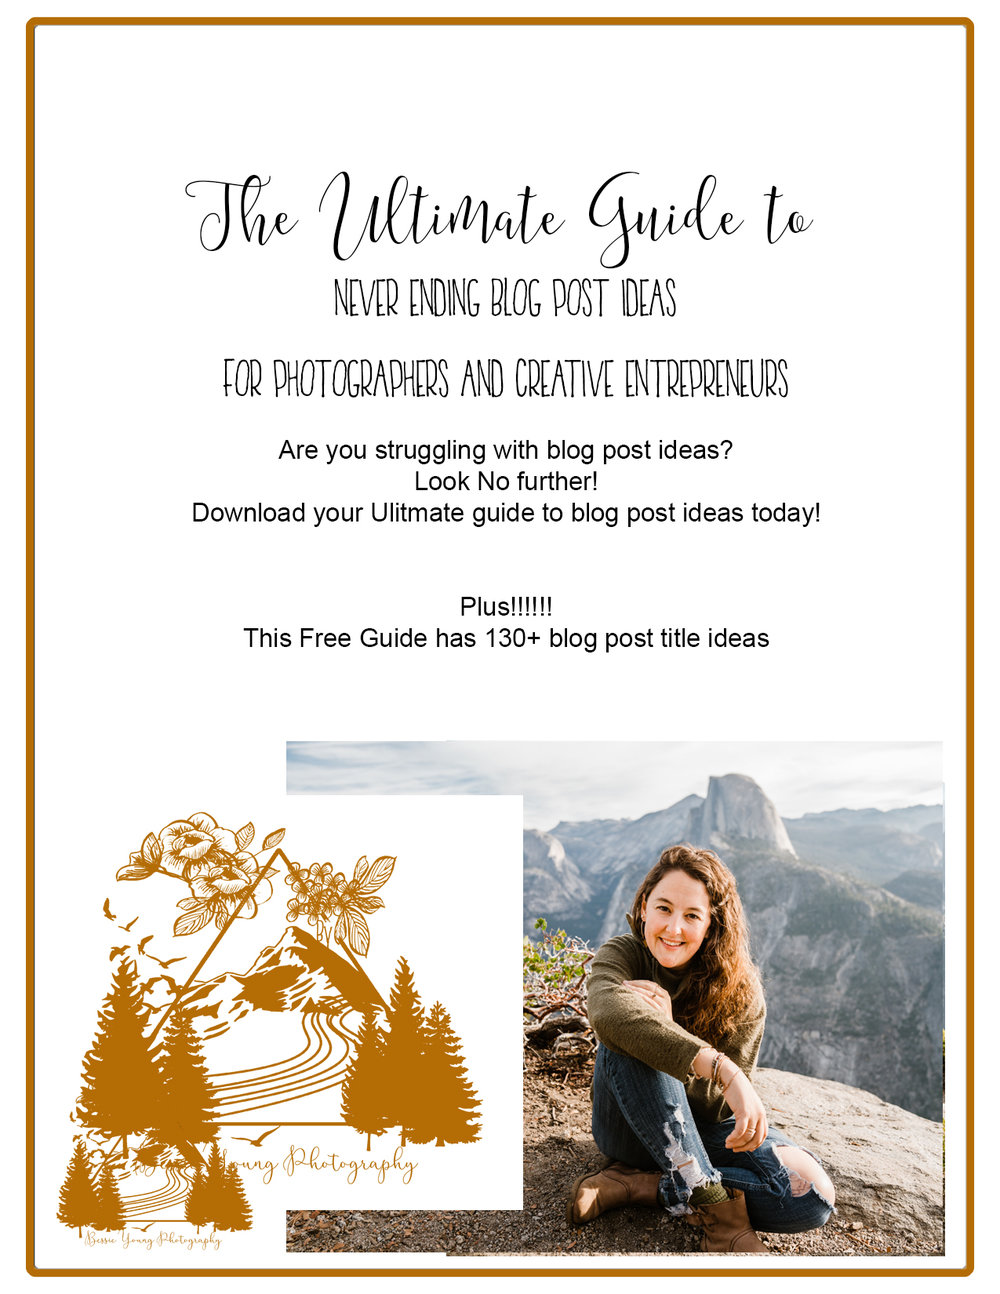 The Ultimate Guide to Blog Post Ideas for Photographers and Creative Entrepreneurs by Bessie Young Photography.jpg